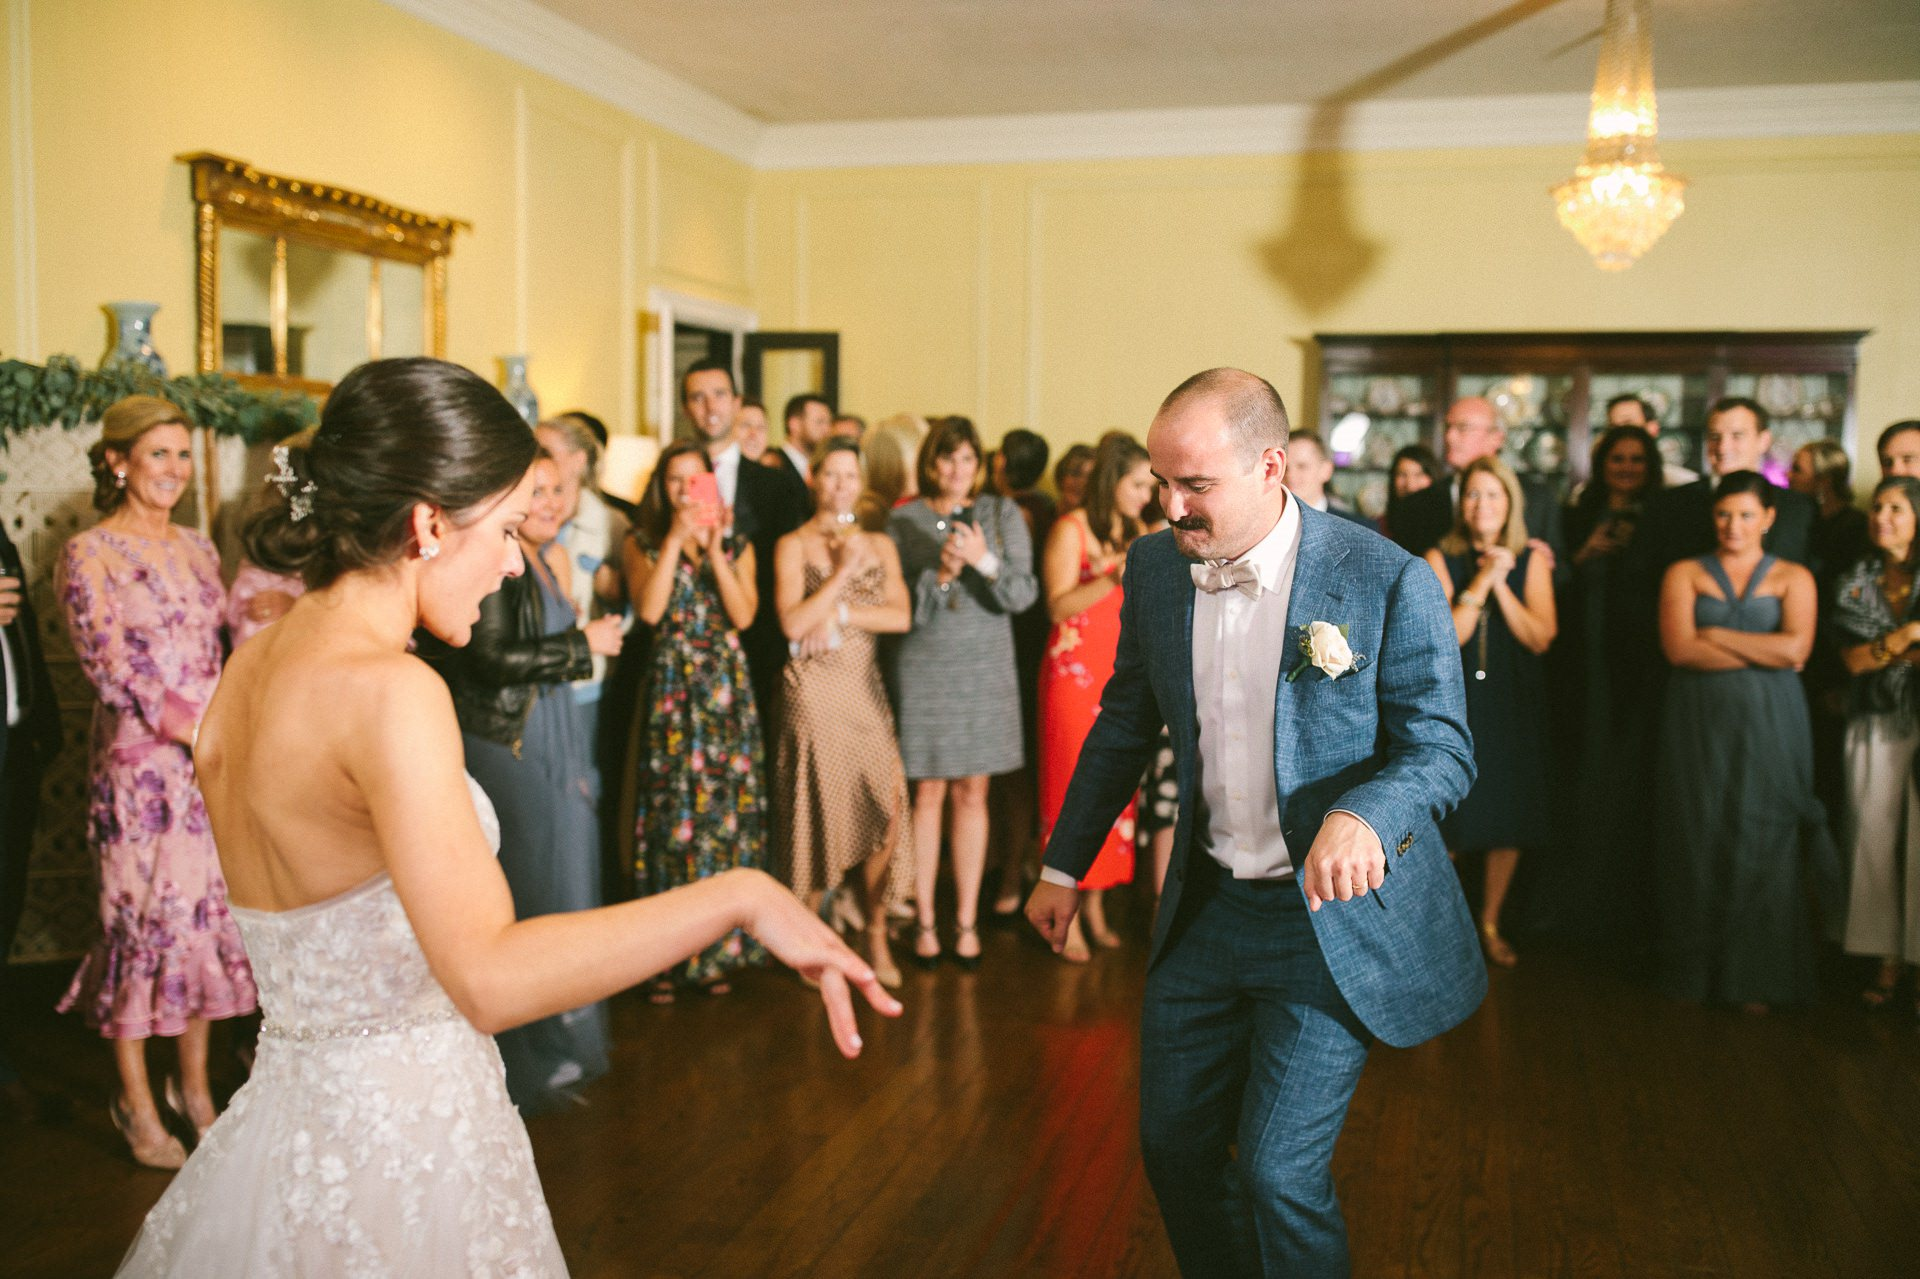 Wedding at Kirtland Country Club in Willoughby 3 39.jpg